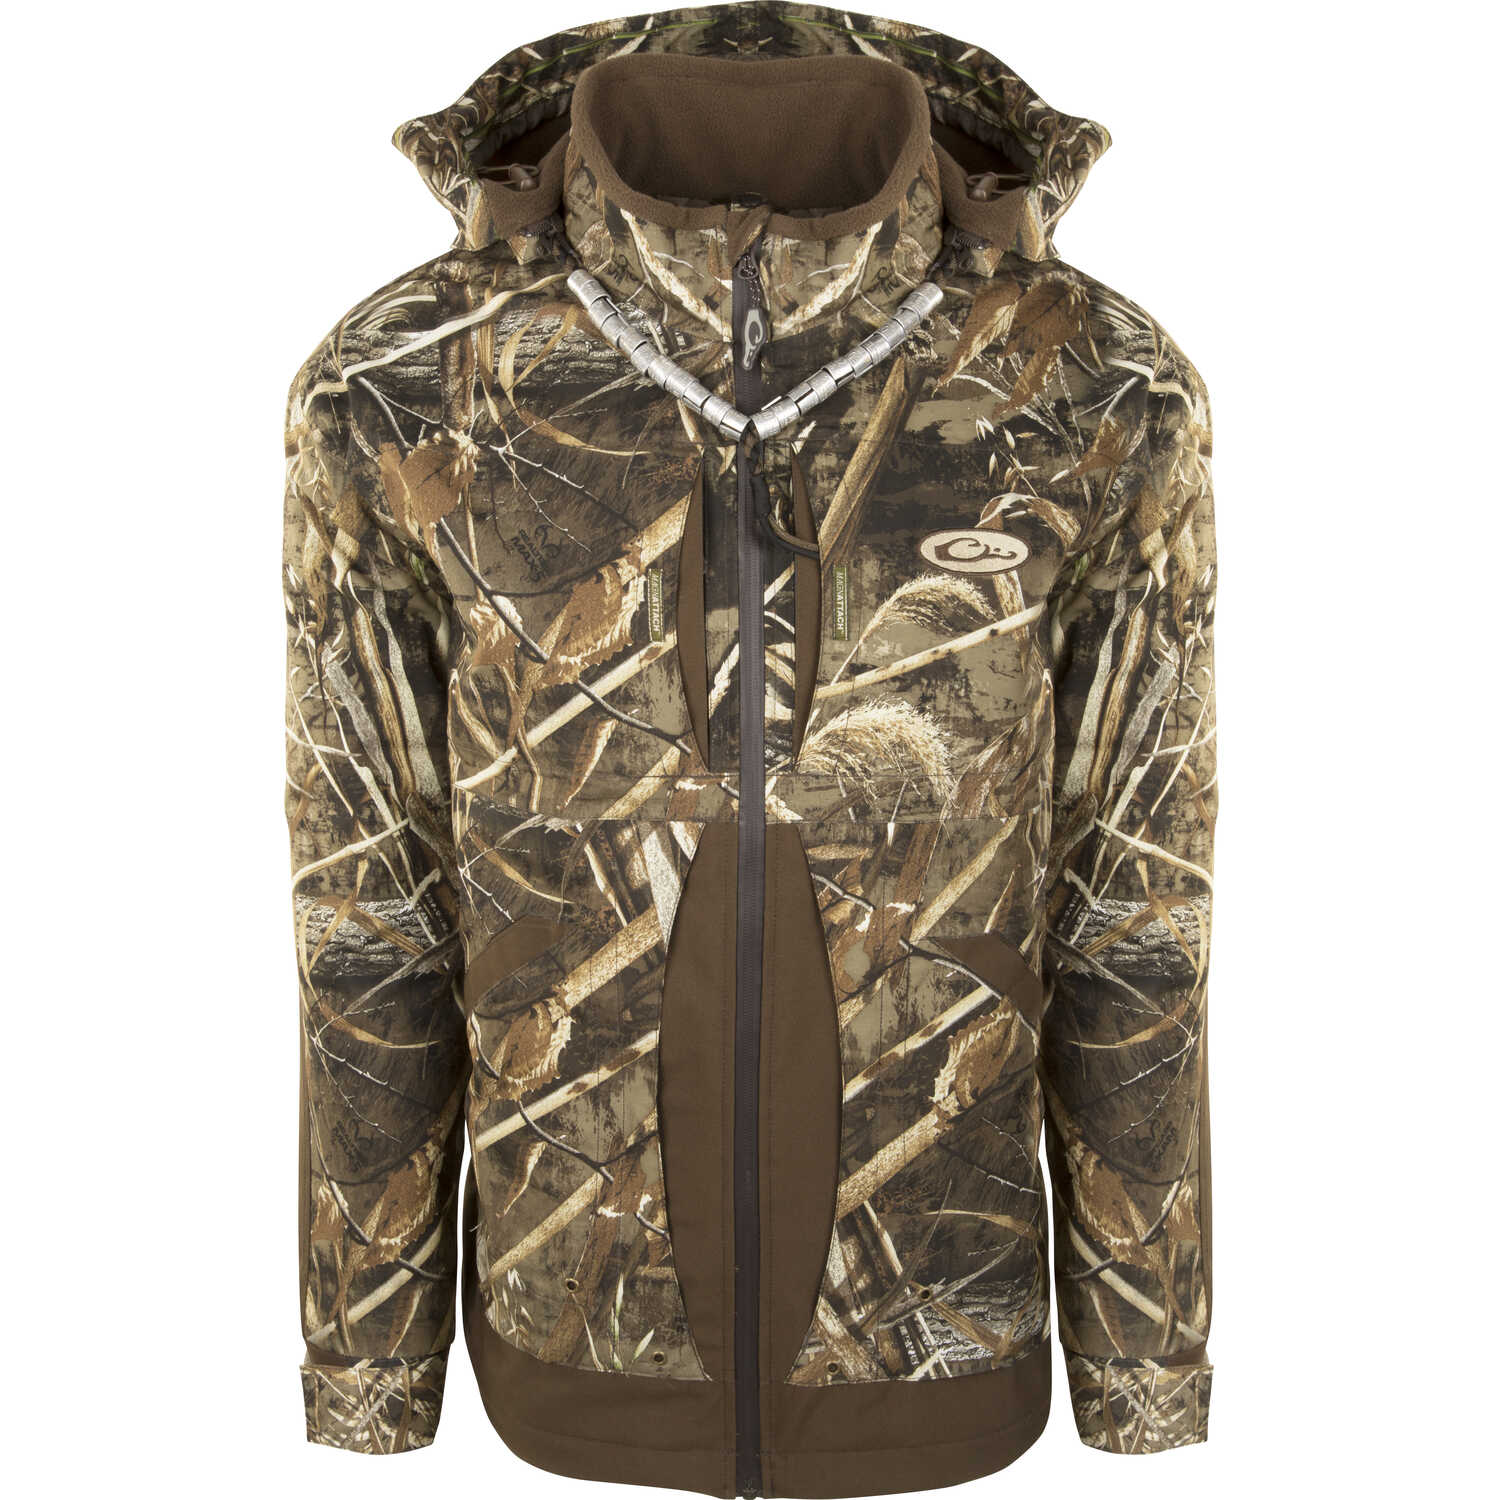 Drake  Guardian Flex Fleece Lined  X-Large  Men's  Long Sleeve  Full-Zip  Realtree Max-5  Jacket